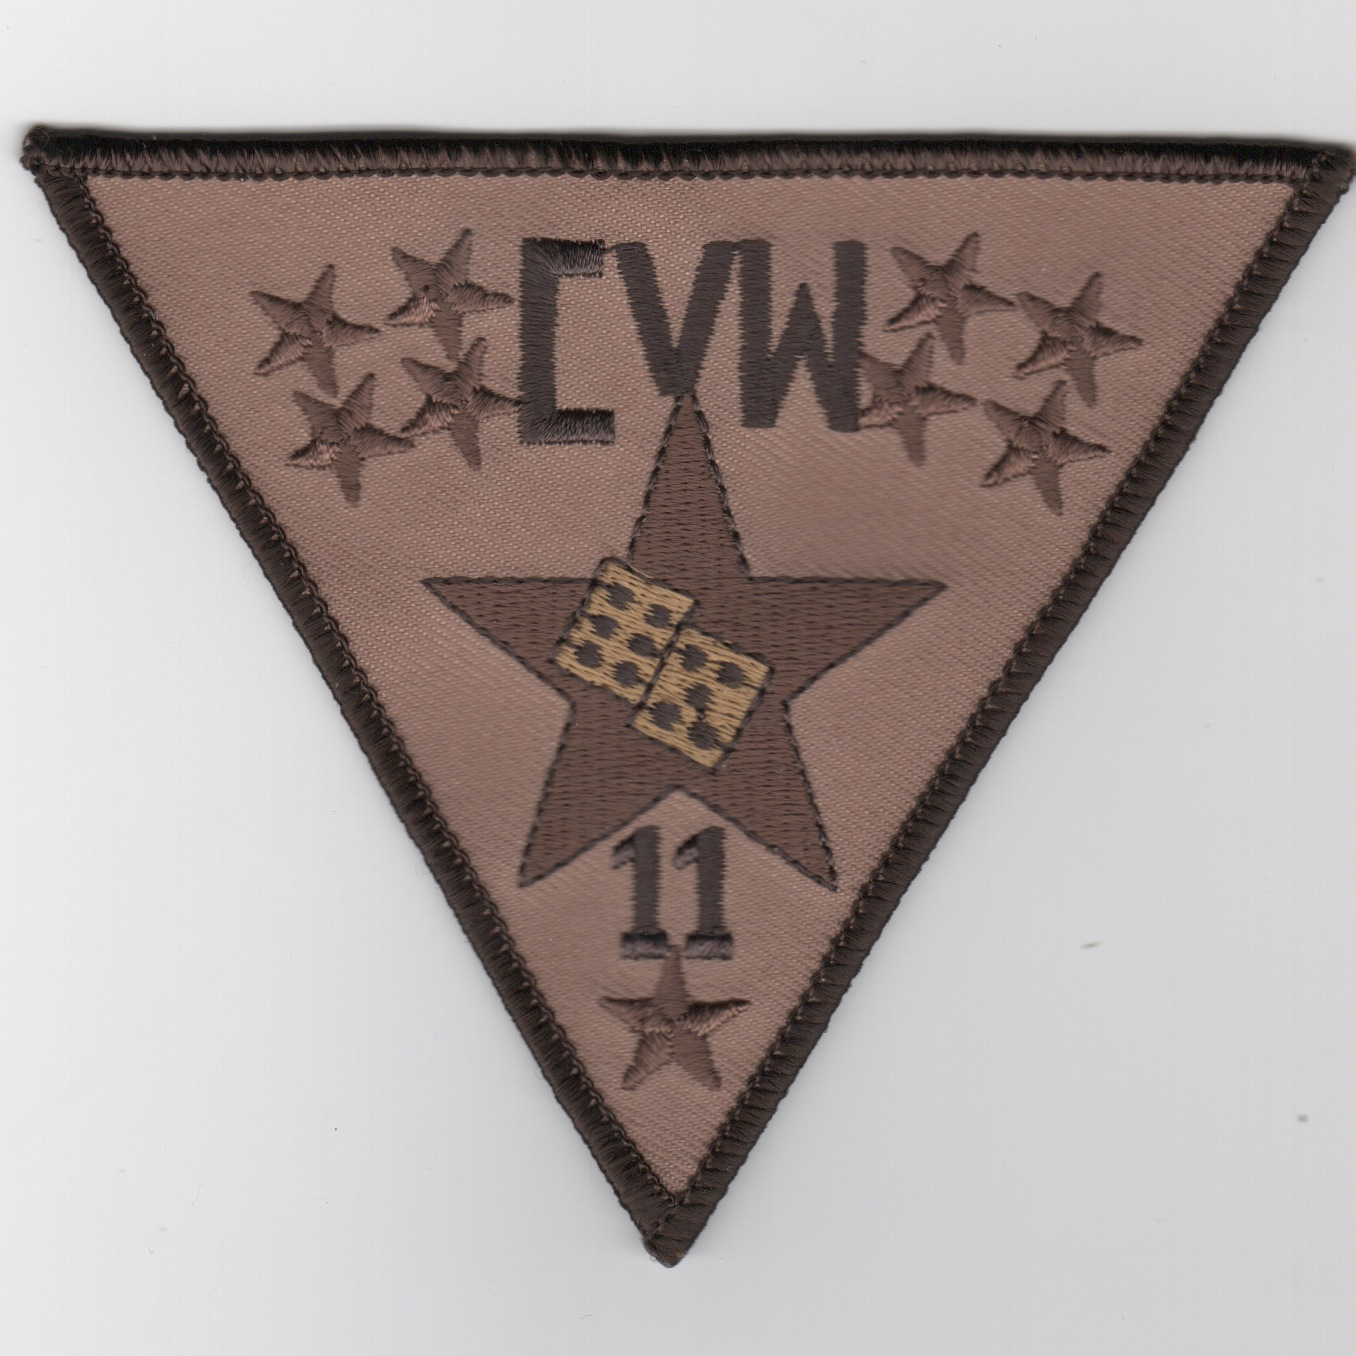 Carrier Air Wing Eleven (CVW-11) 'Dice' Patch (Des)